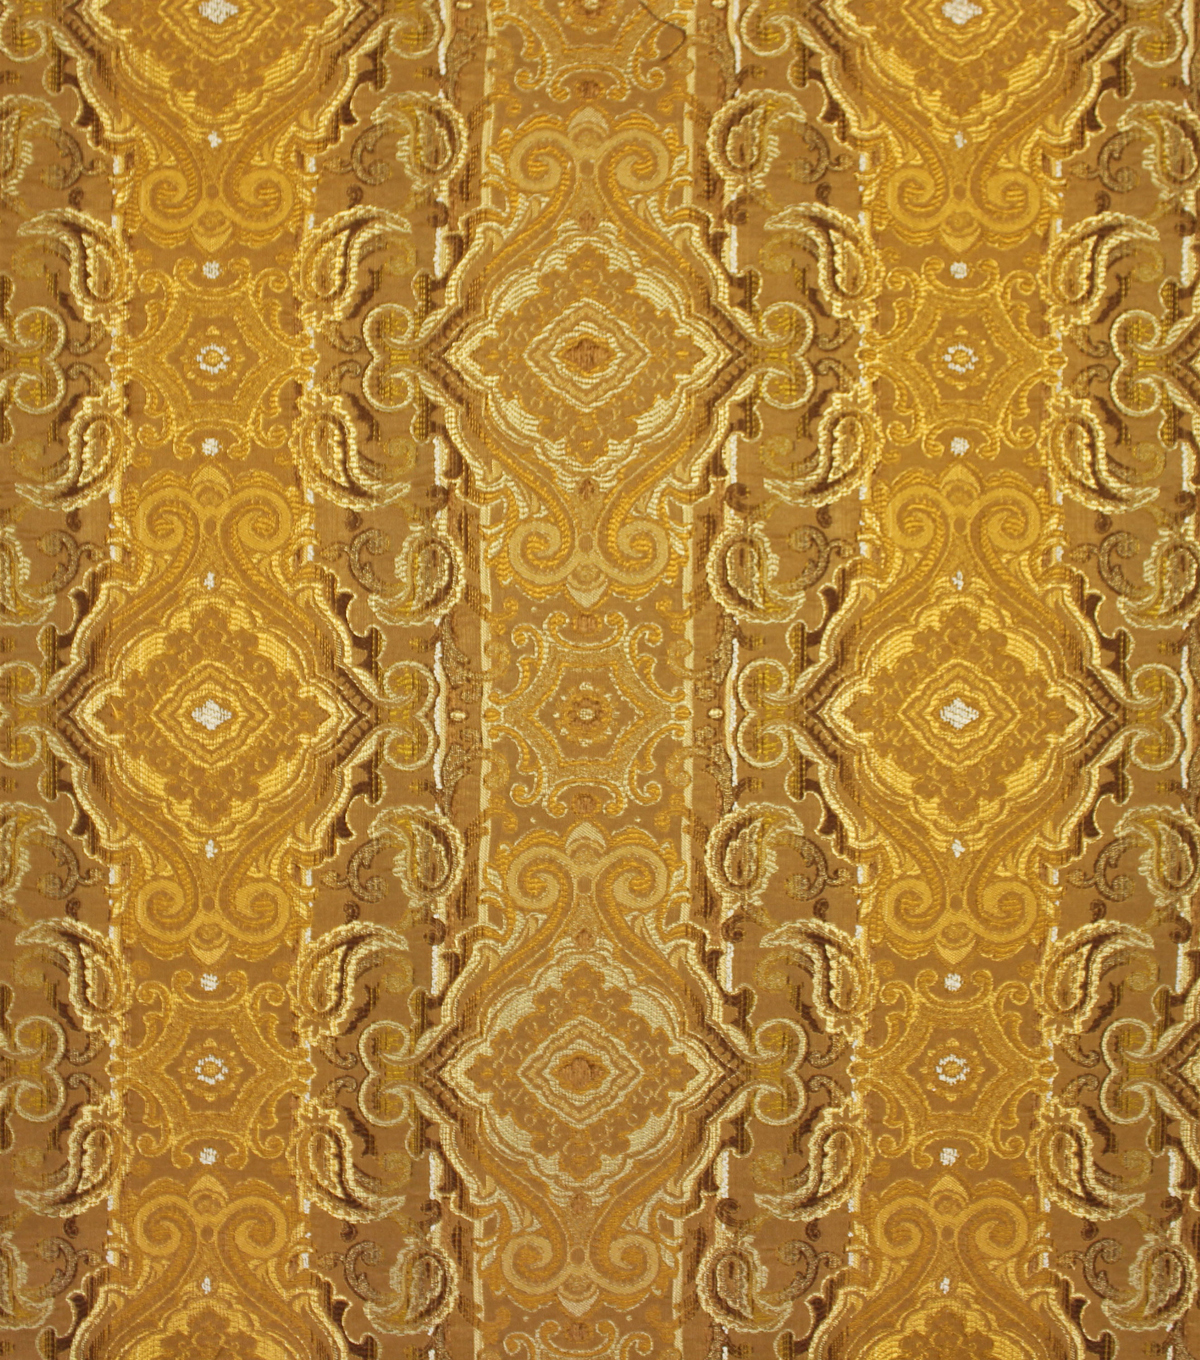 Home Decor 8\u0022x8\u0022 Fabric Swatch-Upholstery Fabric Barrow M7654 5614 Chateau